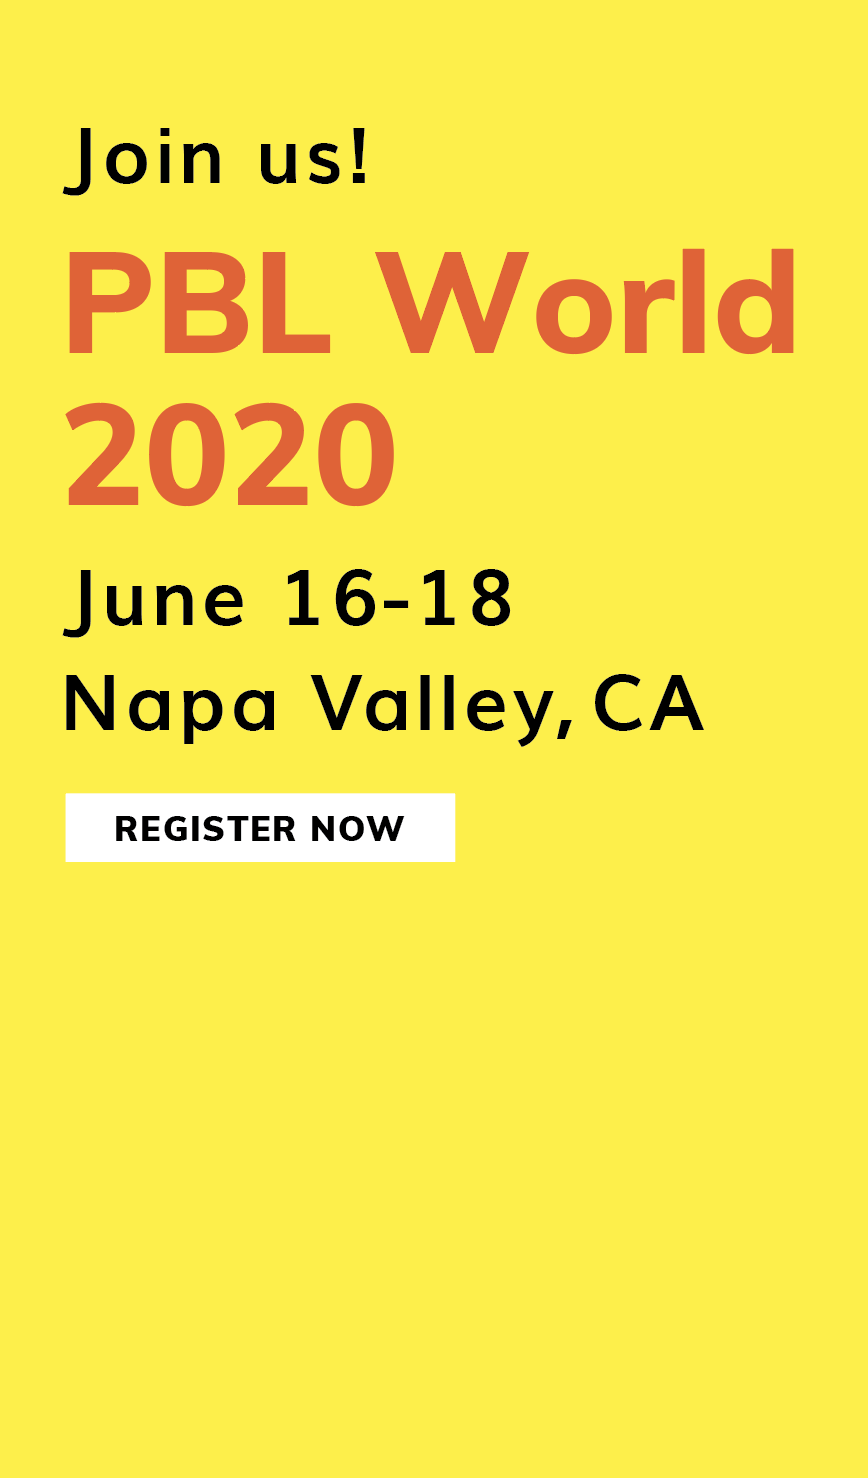 Join us! PBL World 2020. June 15-18 in Napa Valley, CA. Register Now